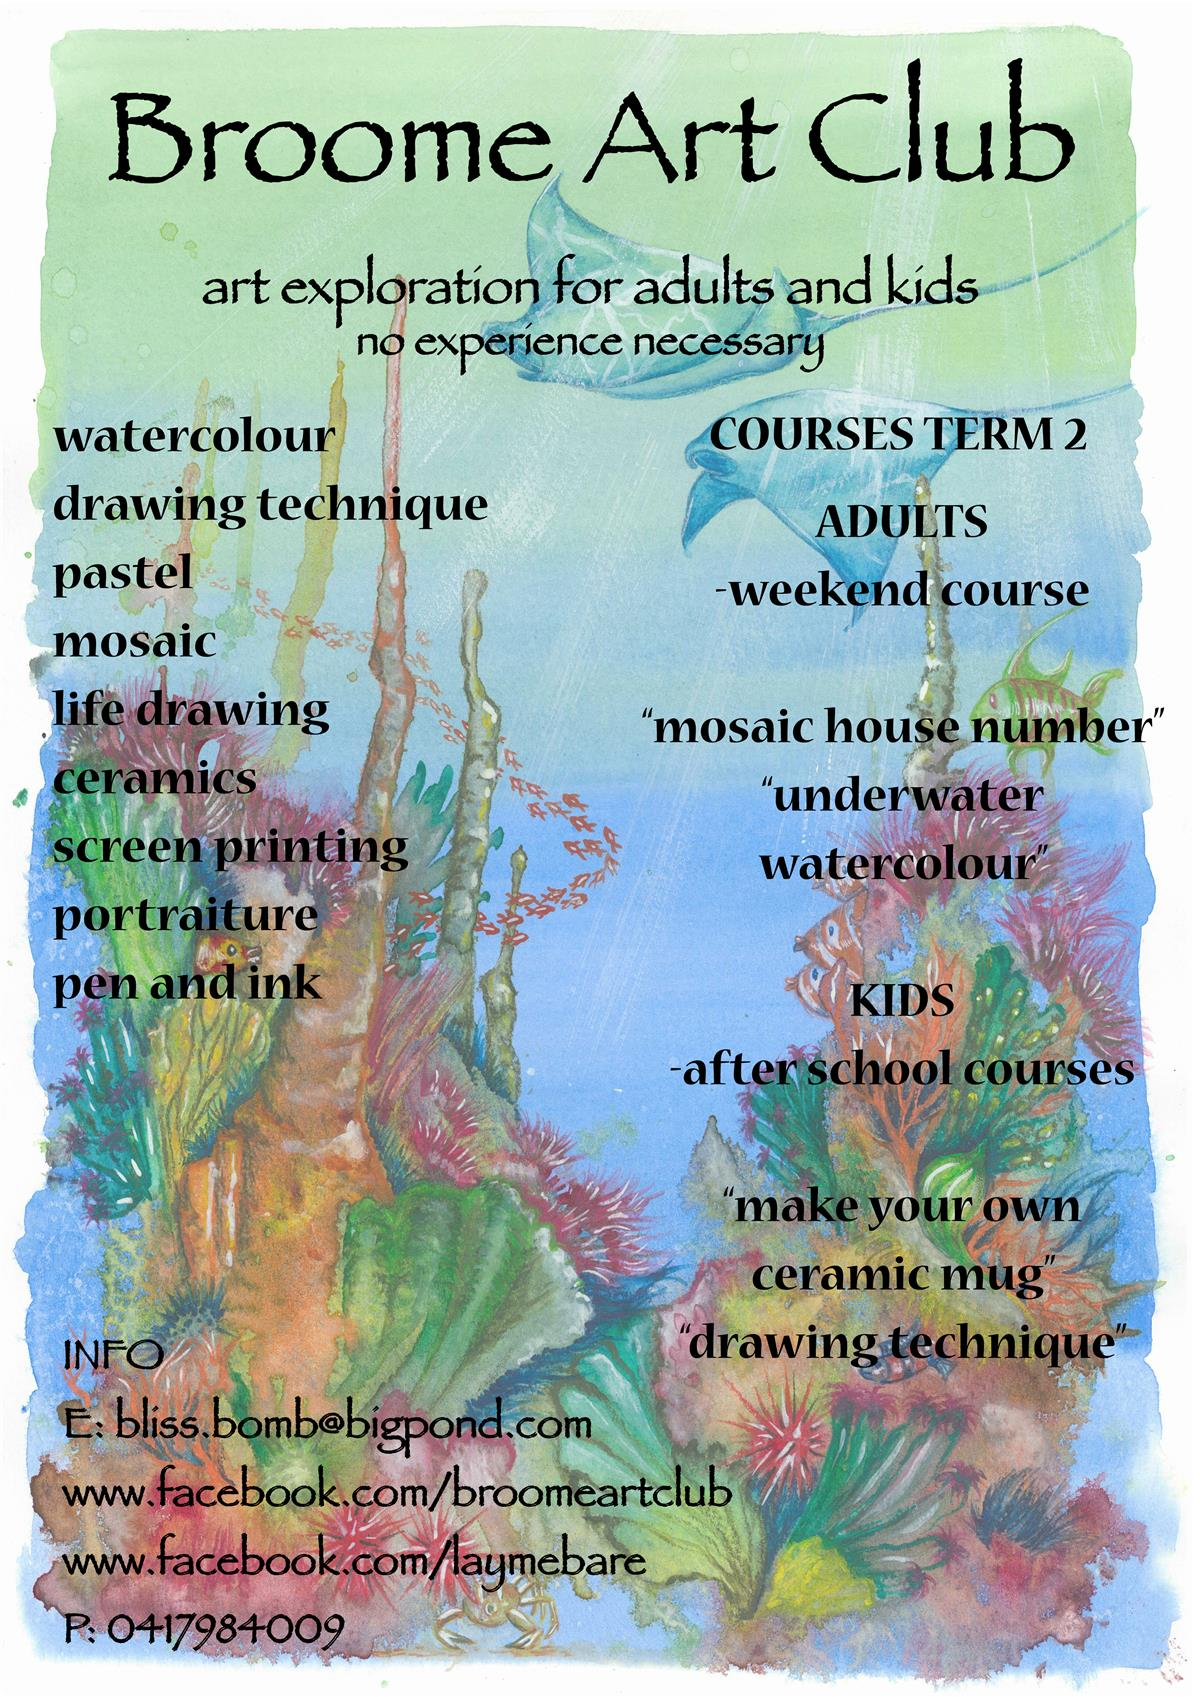 Broome Art Club